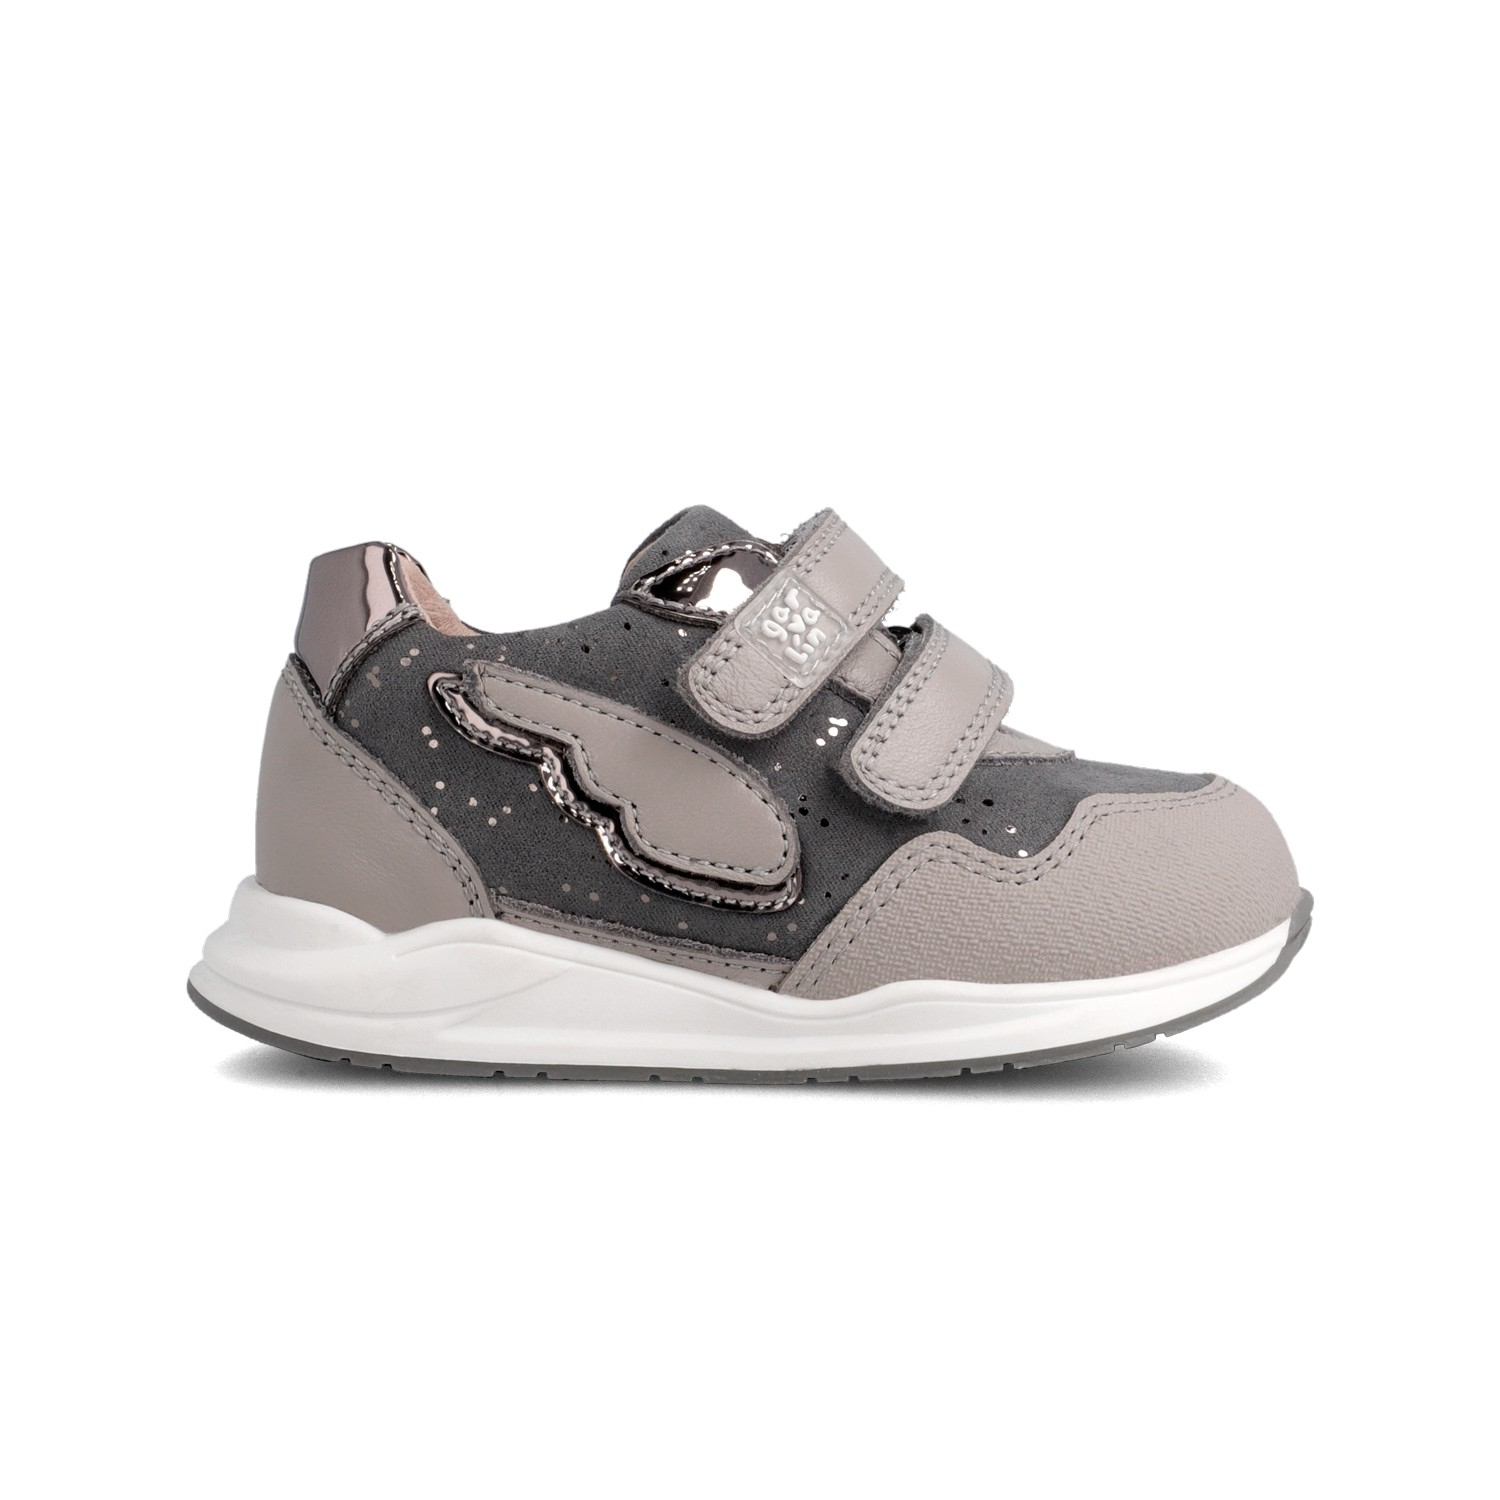 Sneakers for girl 211502